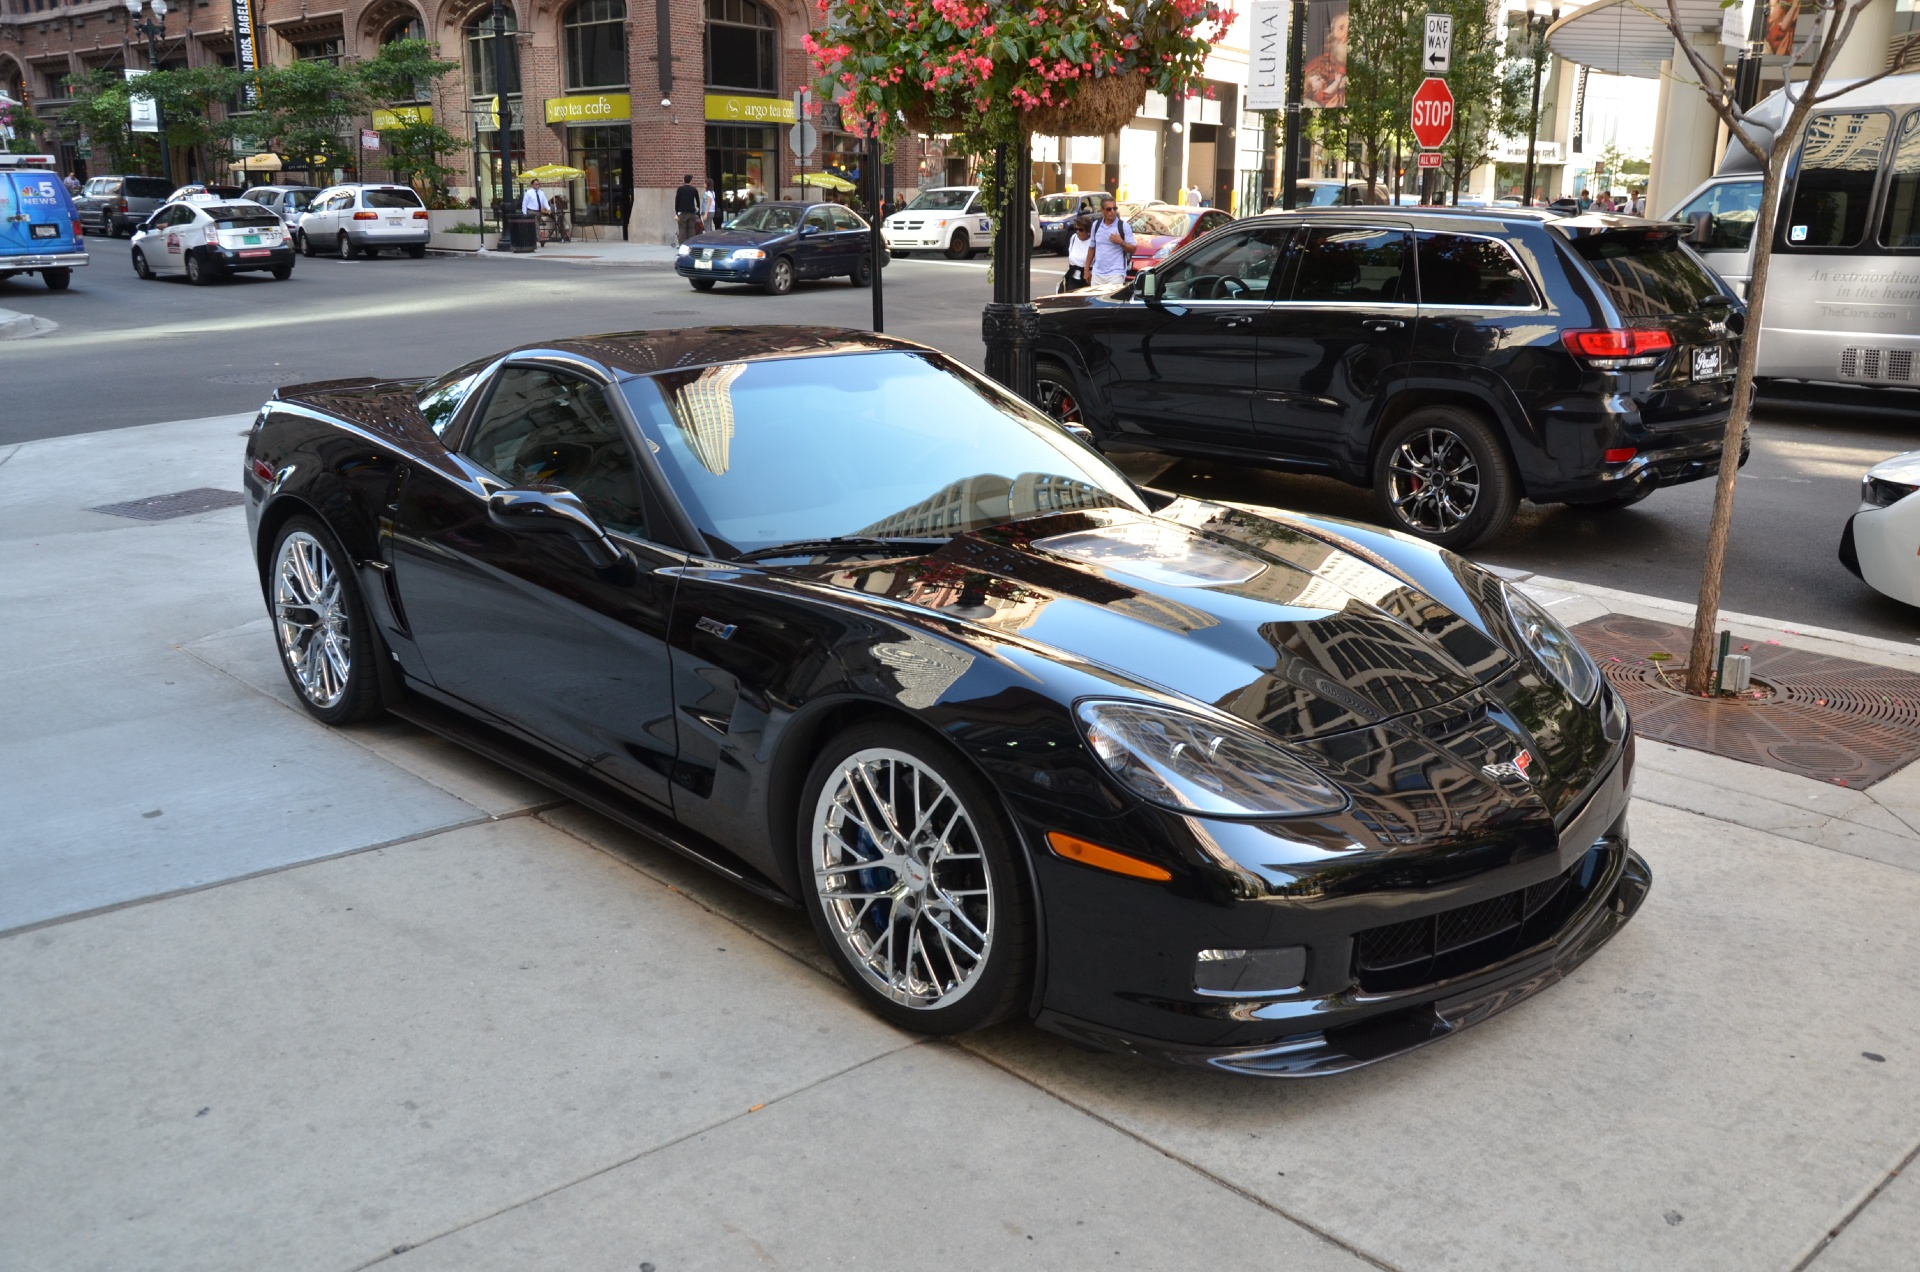 2009 chevrolet corvette zr1 stock b735a for sale near chicago il il chevrolet dealer. Black Bedroom Furniture Sets. Home Design Ideas